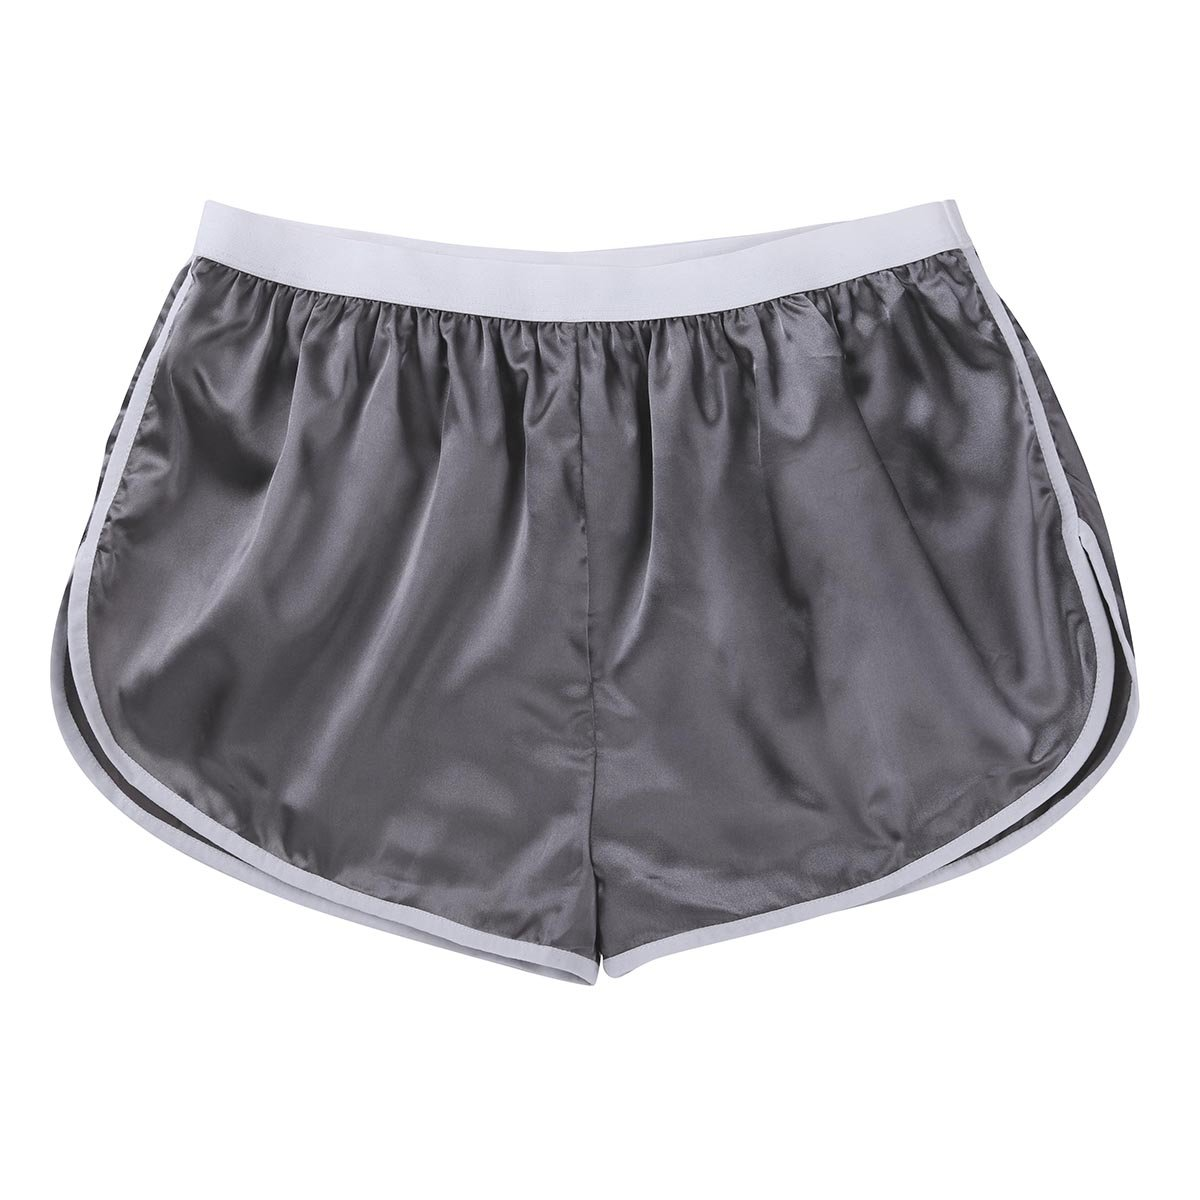 CHICTRY Men's Summer Silk Satin Shorts Frilly Boxer Briefs Casual Loose Underwear